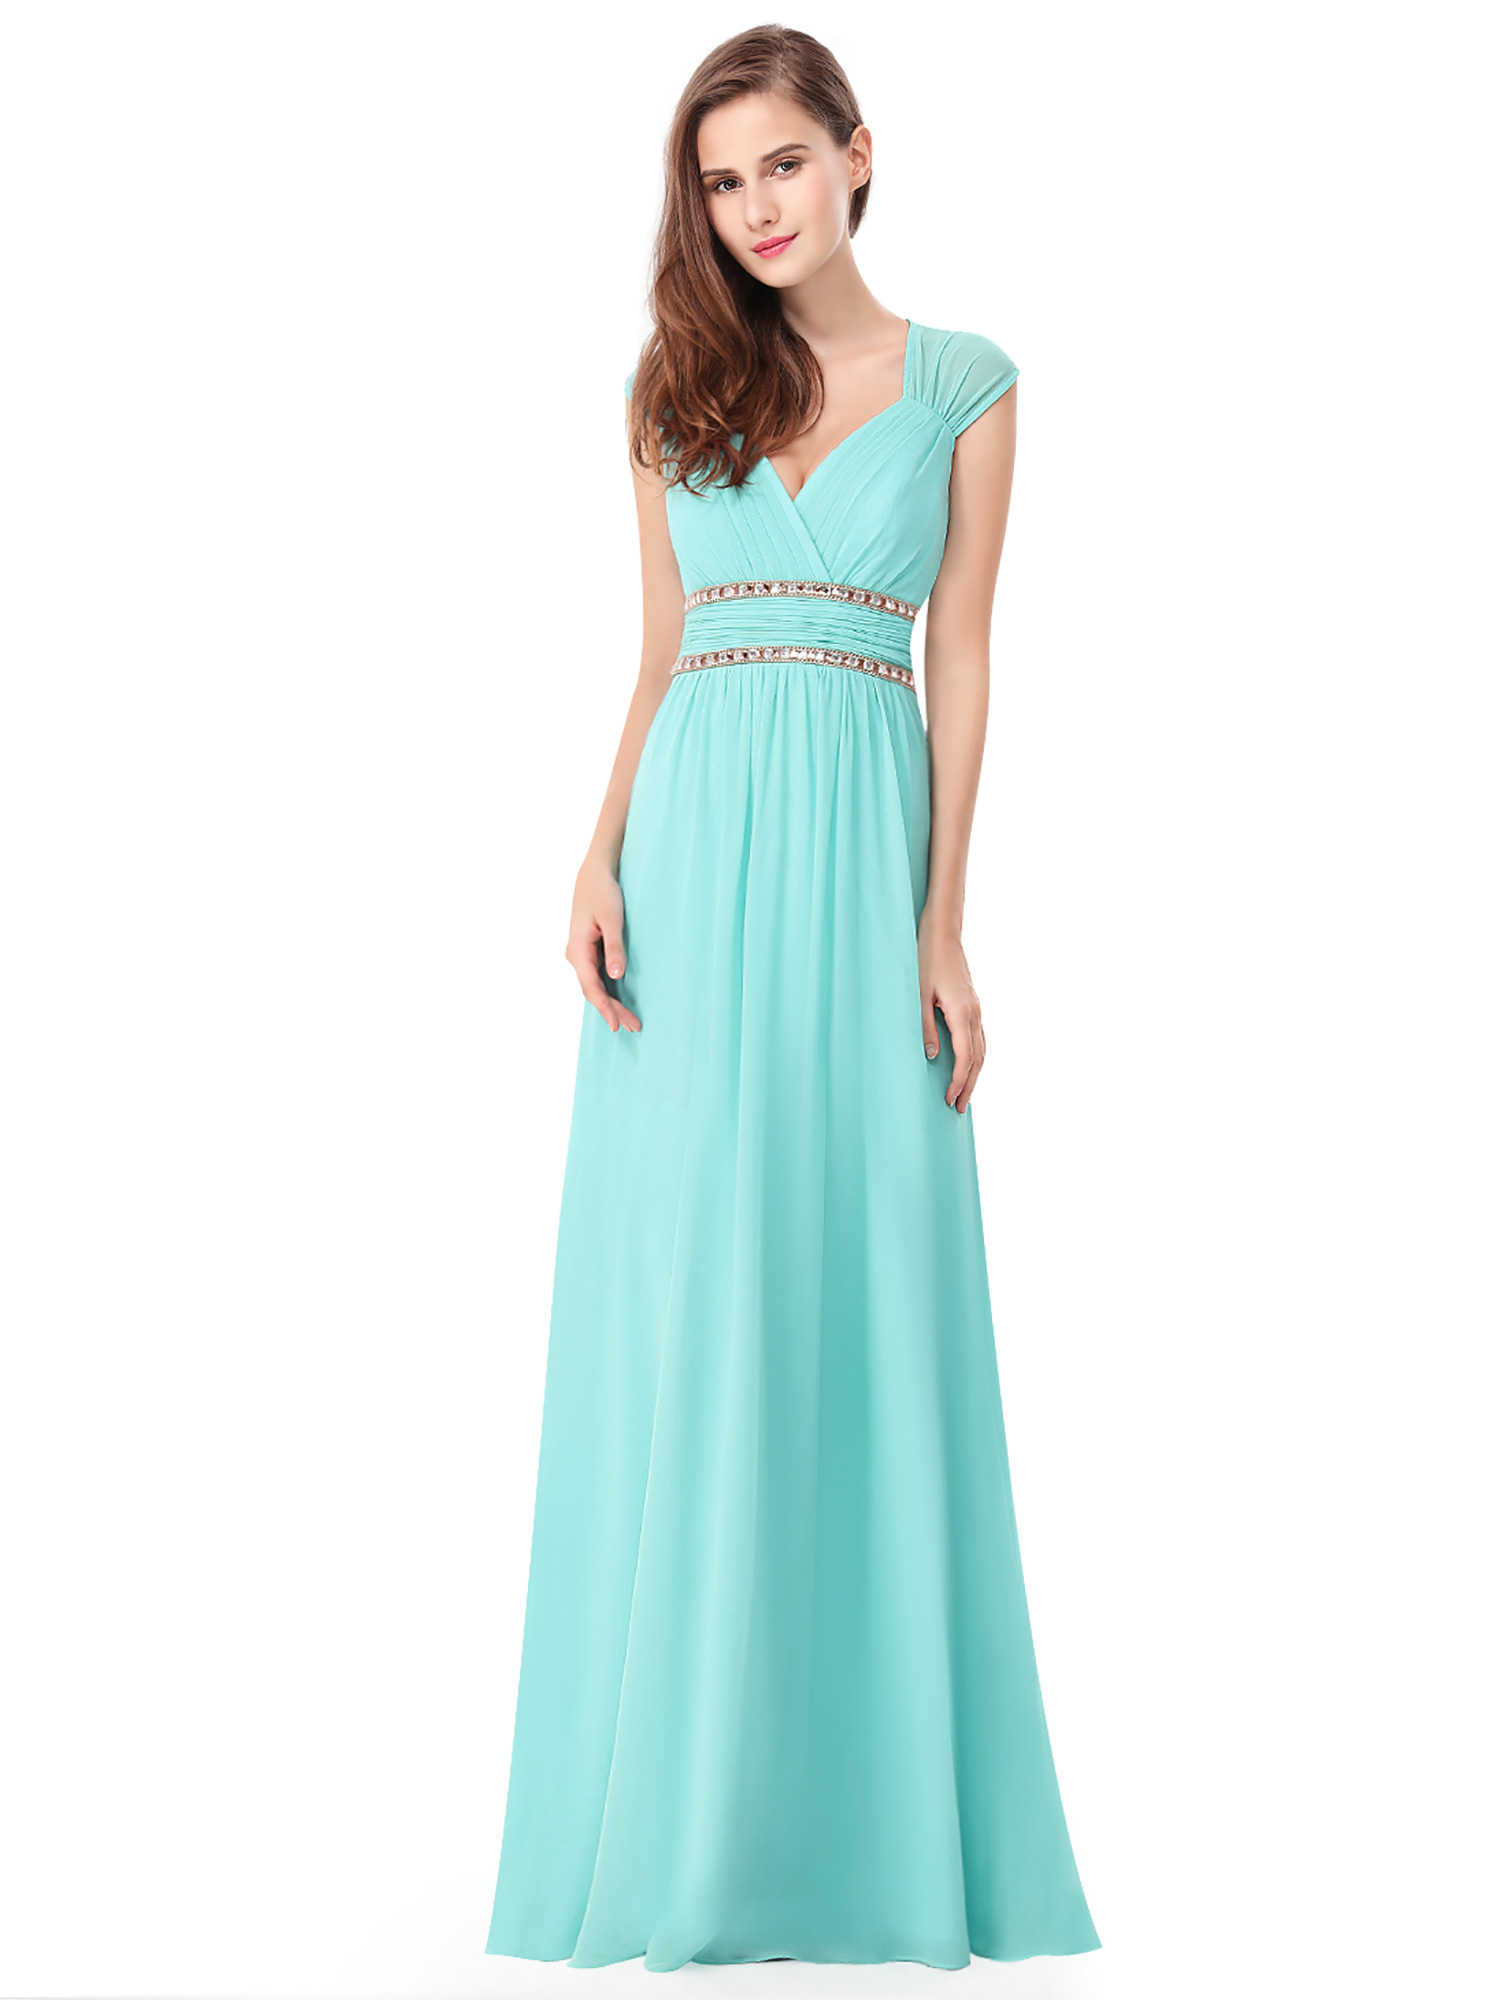 Ever-Pretty Women's Elegant Long V-neck Evening Party Maxi Dresses for Women 08697 (Aqua 4 US) by Ever Pretty Garment Inc